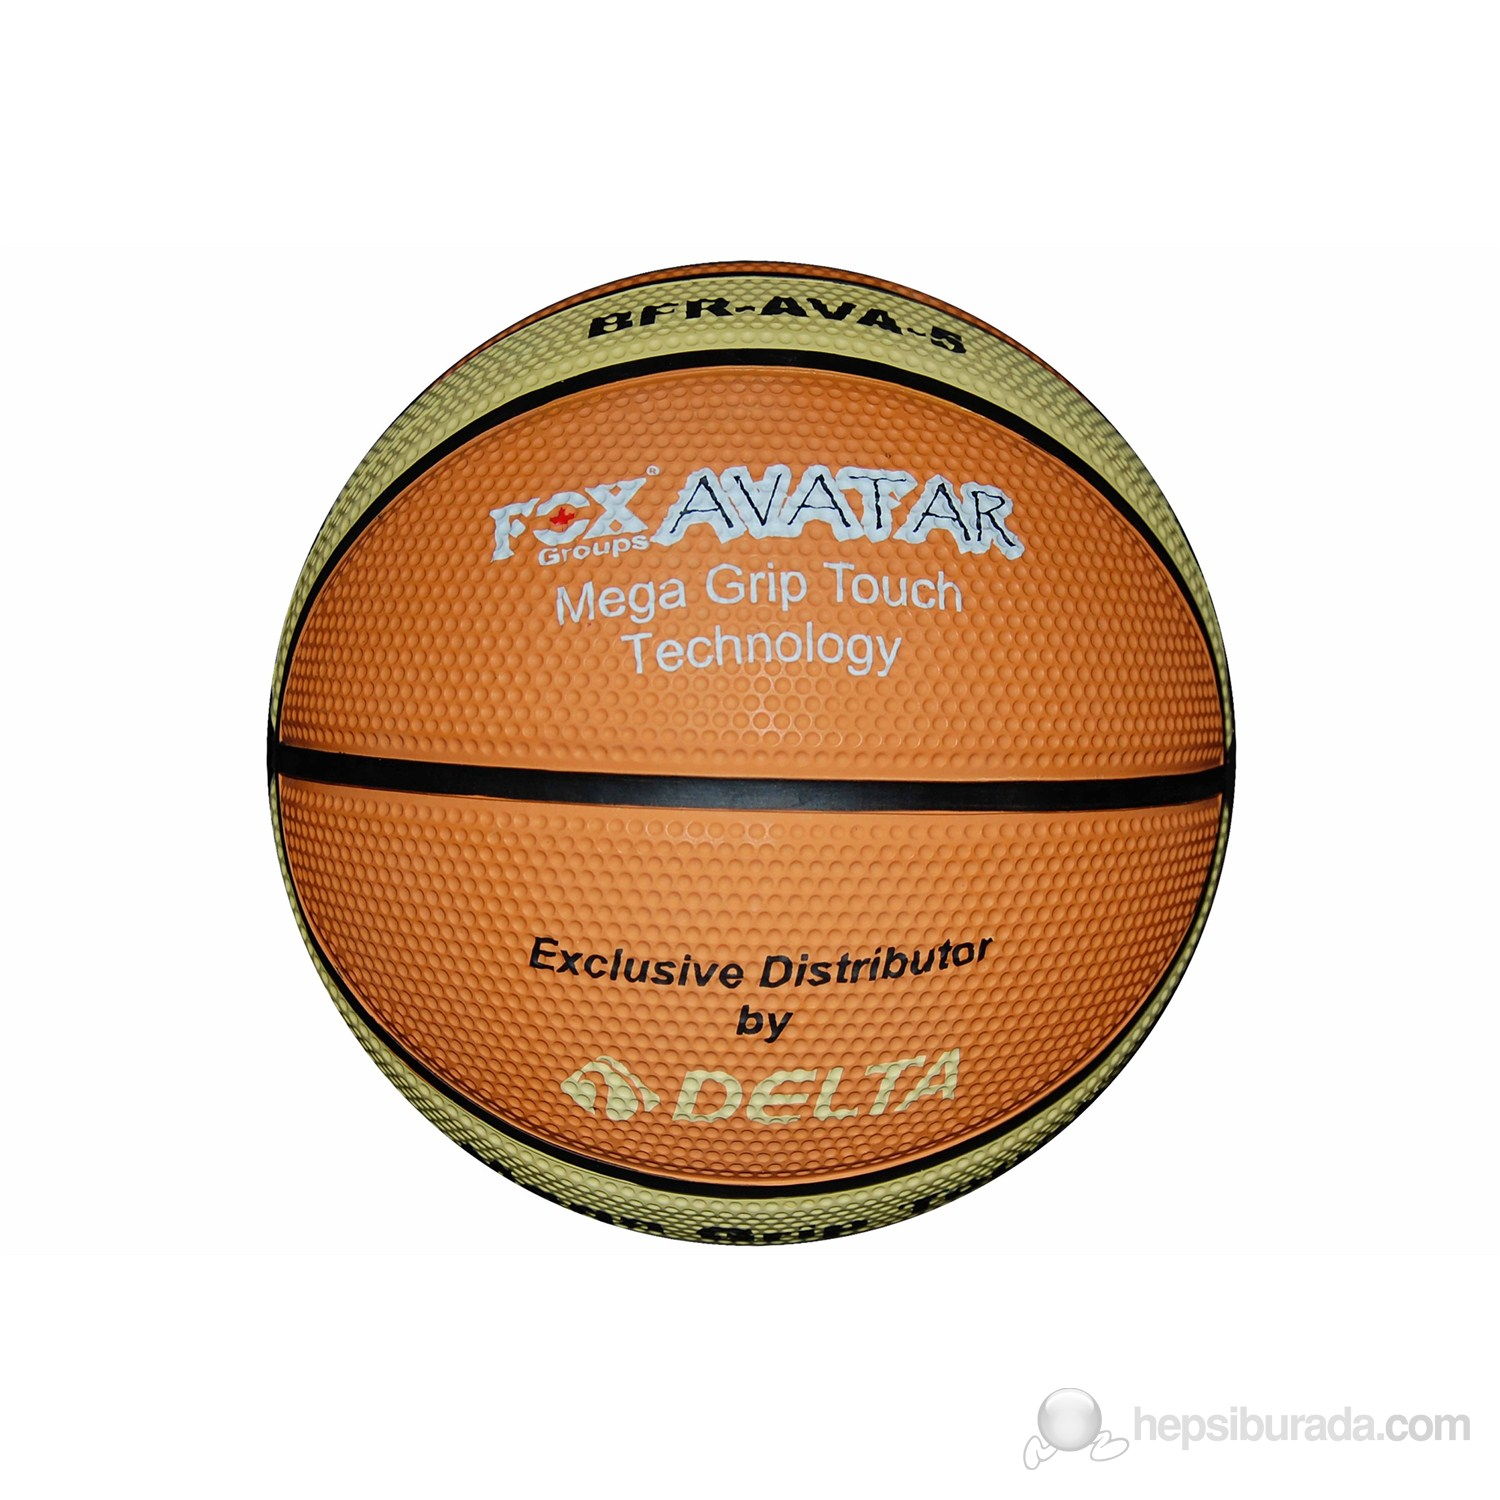 Delta Fox Bfr-Ava Basketbol Topu No:5  9 Panel